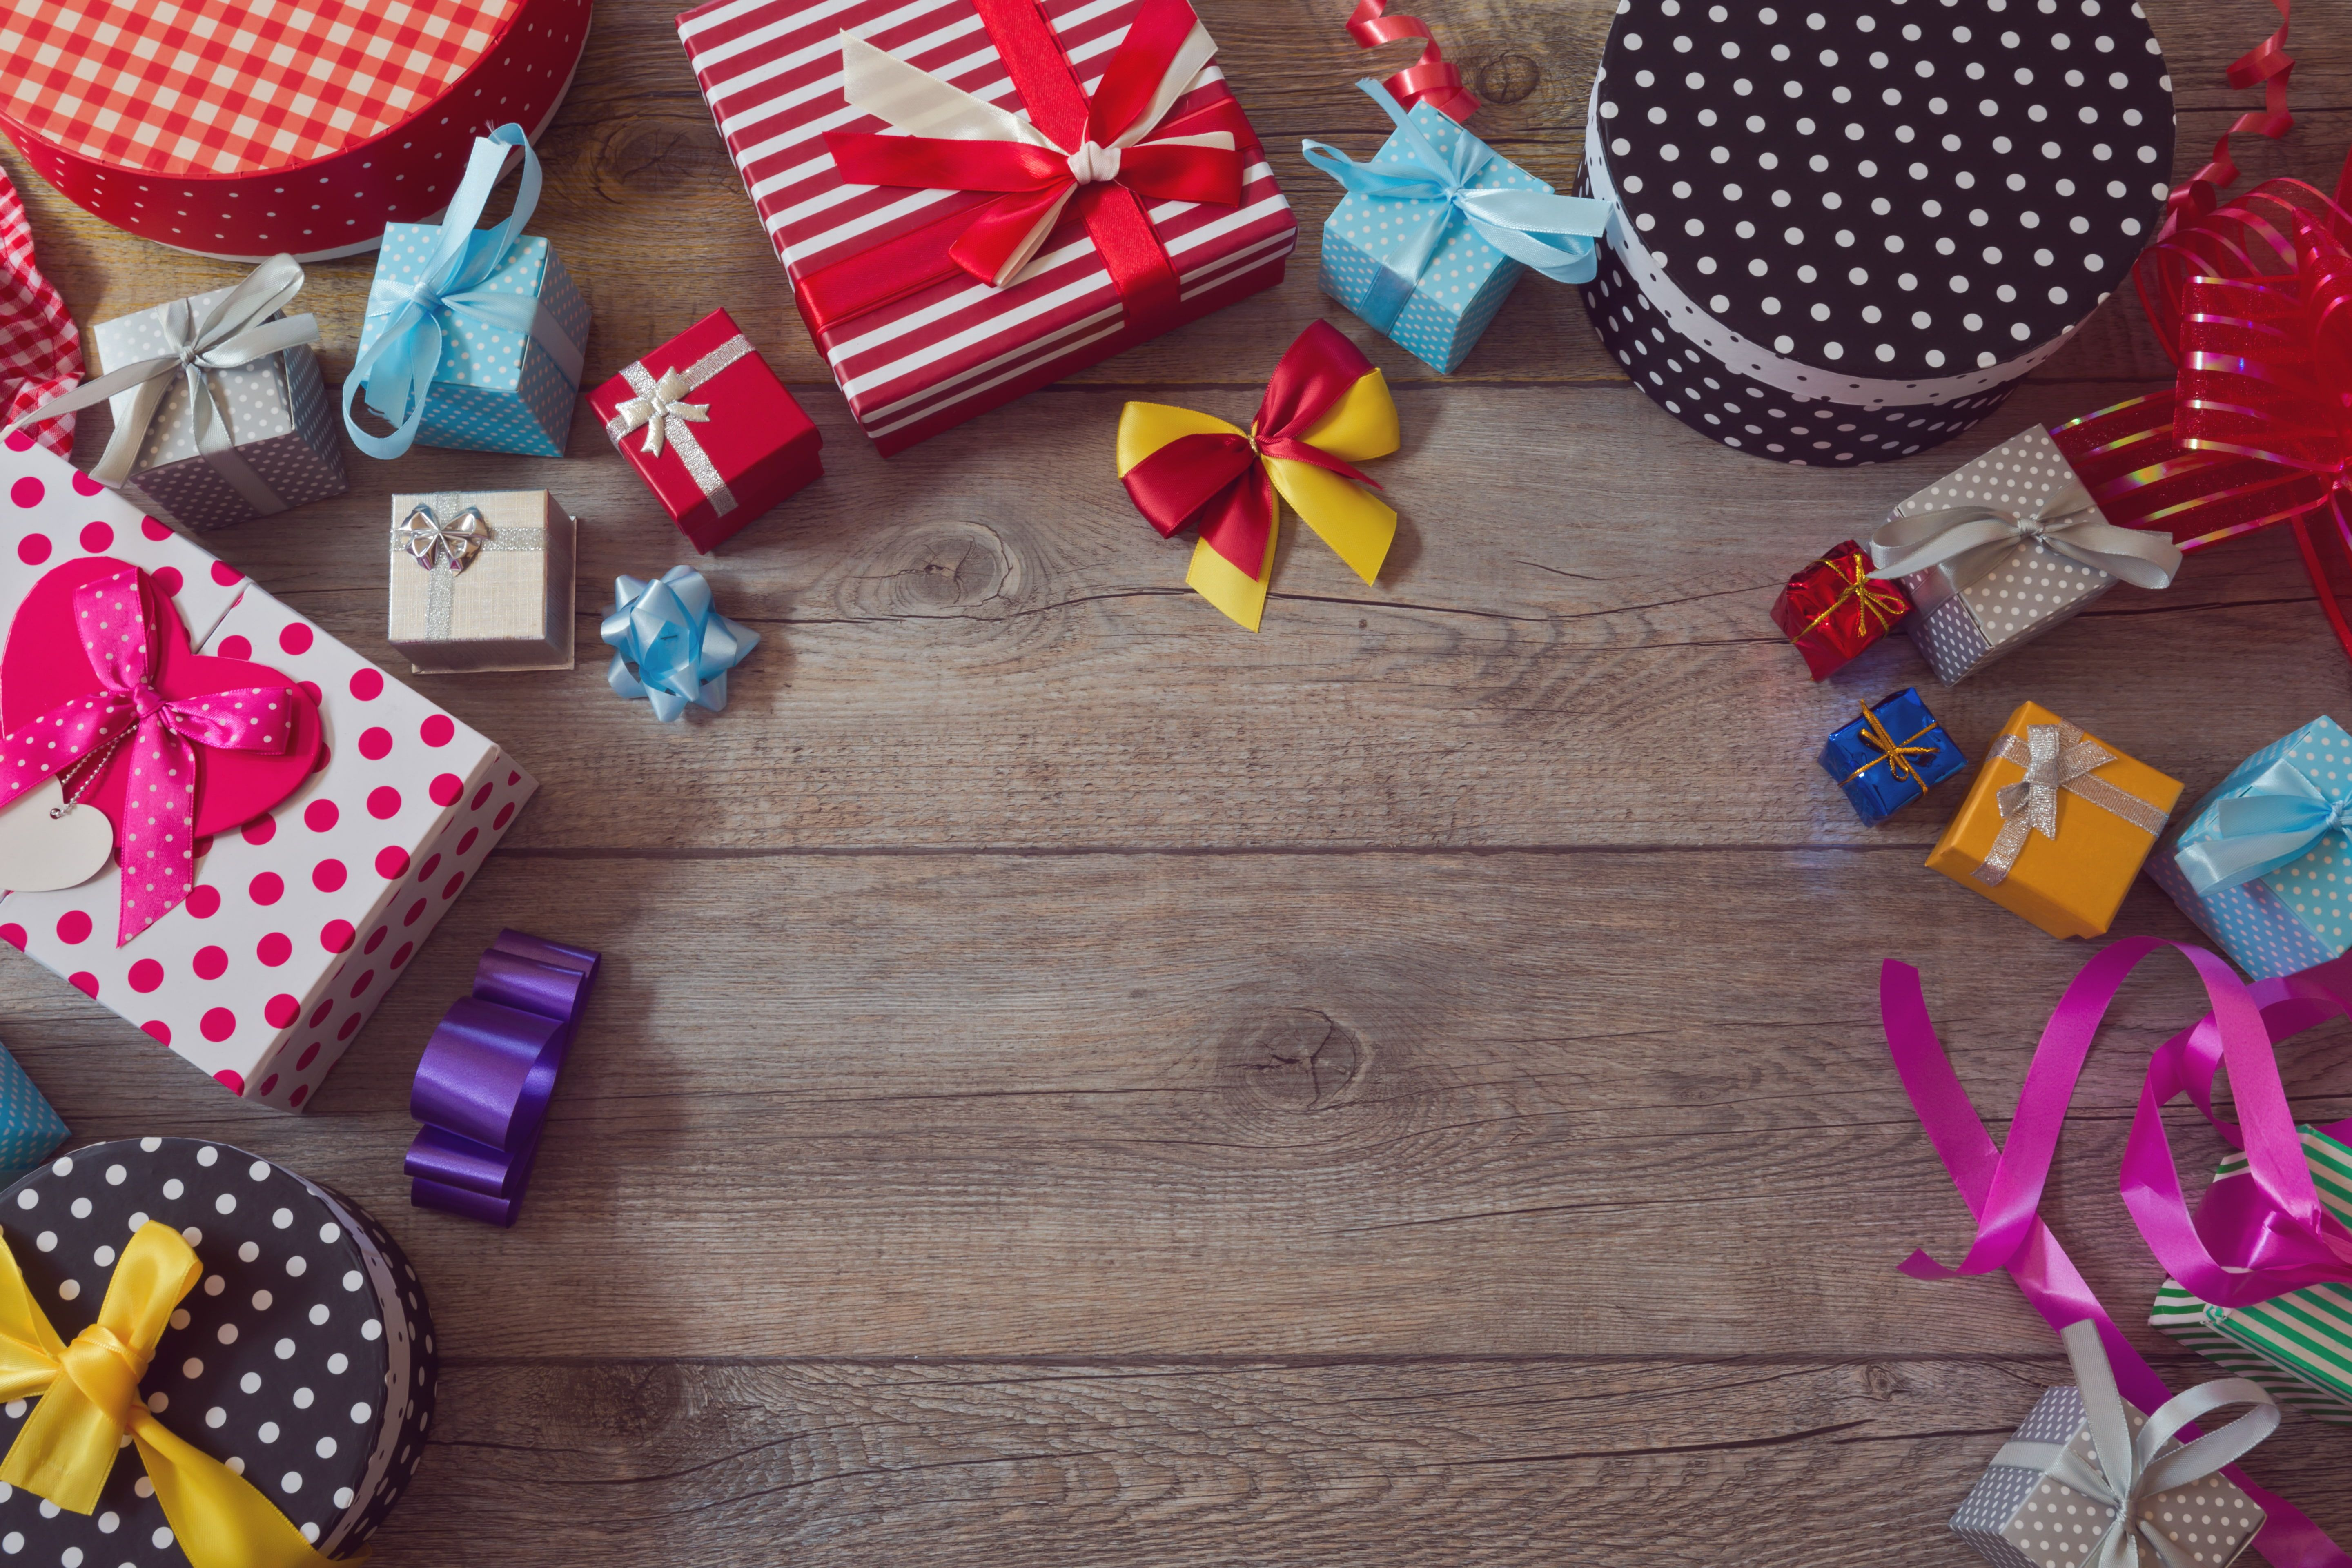 Assorted Gift Box Lot Colorful Gifts Wood Box Bows Gifts 5k Wallpaper Hdwallpaper Desktop In 2021 Assorted Gift Gifts Pink Christmas Gifts Hd wallpaper christmas tree gifts boxes